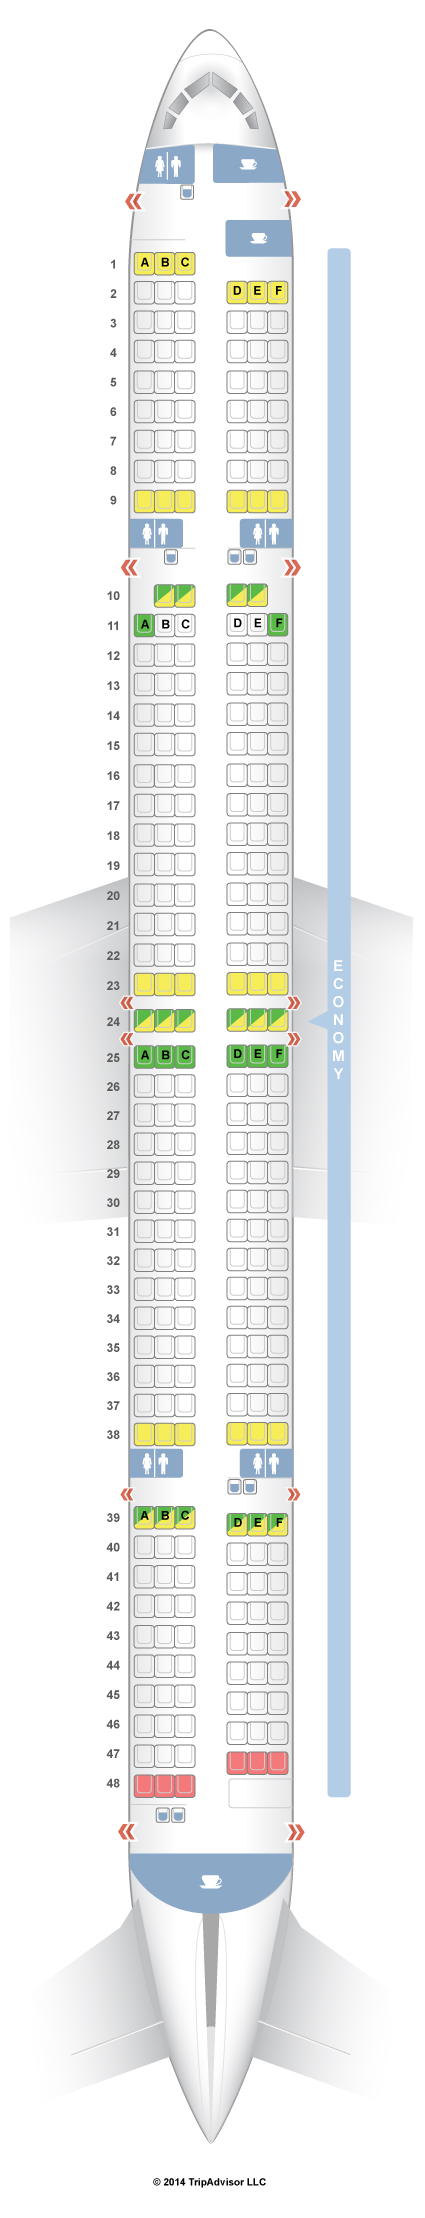 Boeing 757 300 Delta Seating Chart Brokeasshome Com